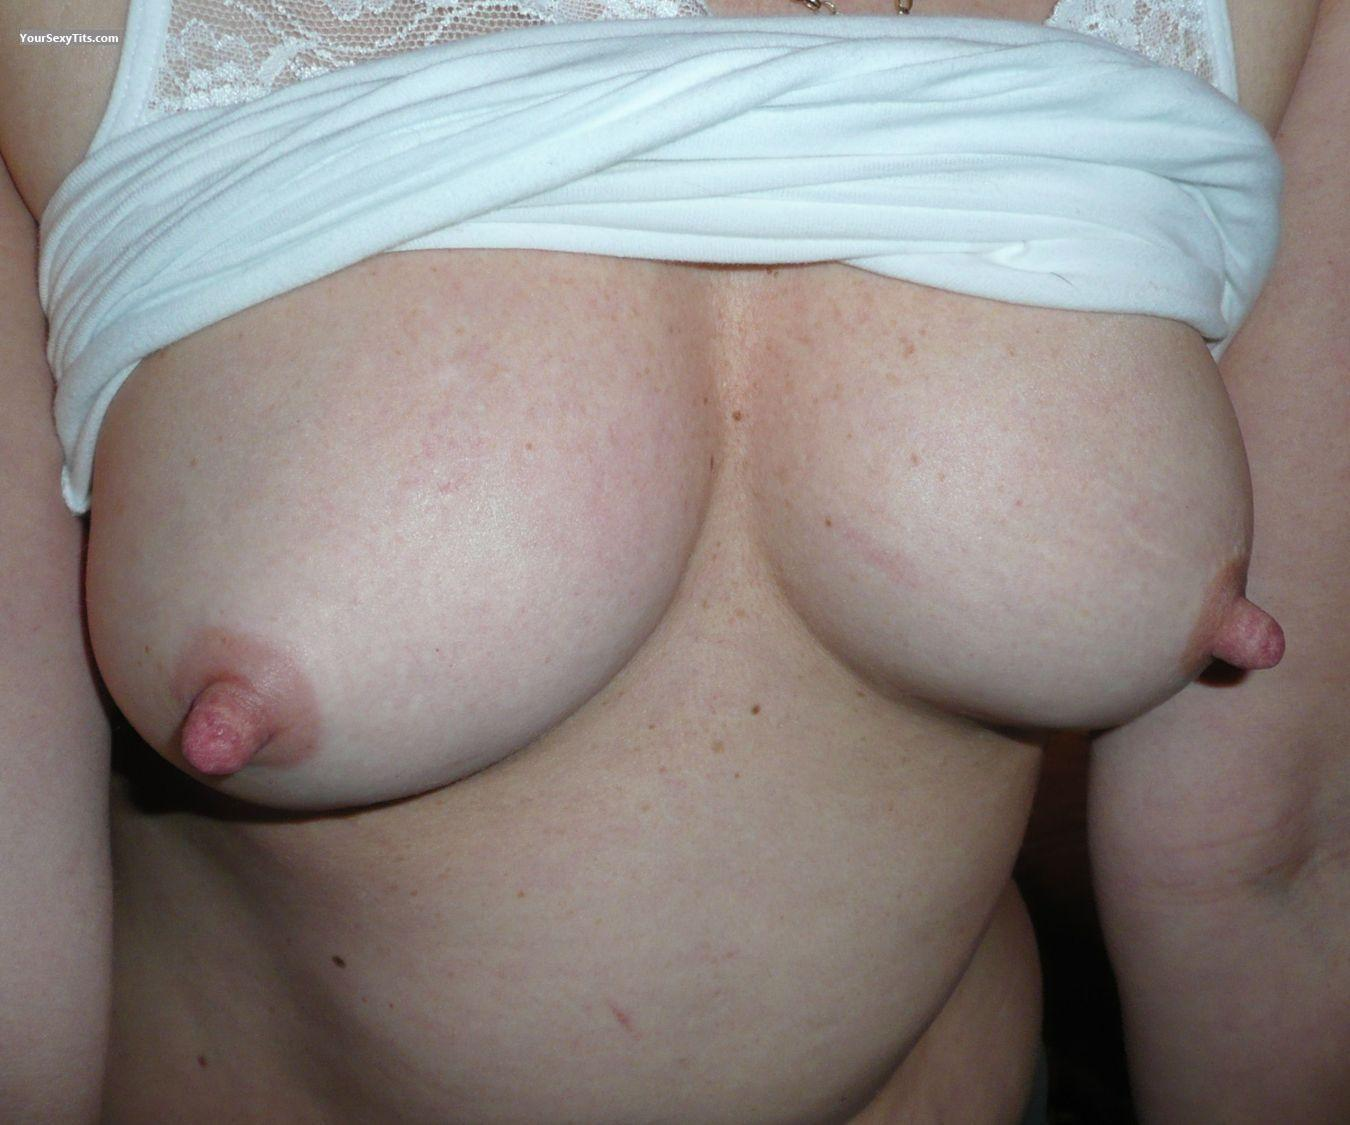 Tit Flash: Medium Tits - Tontoblue from United Kingdom